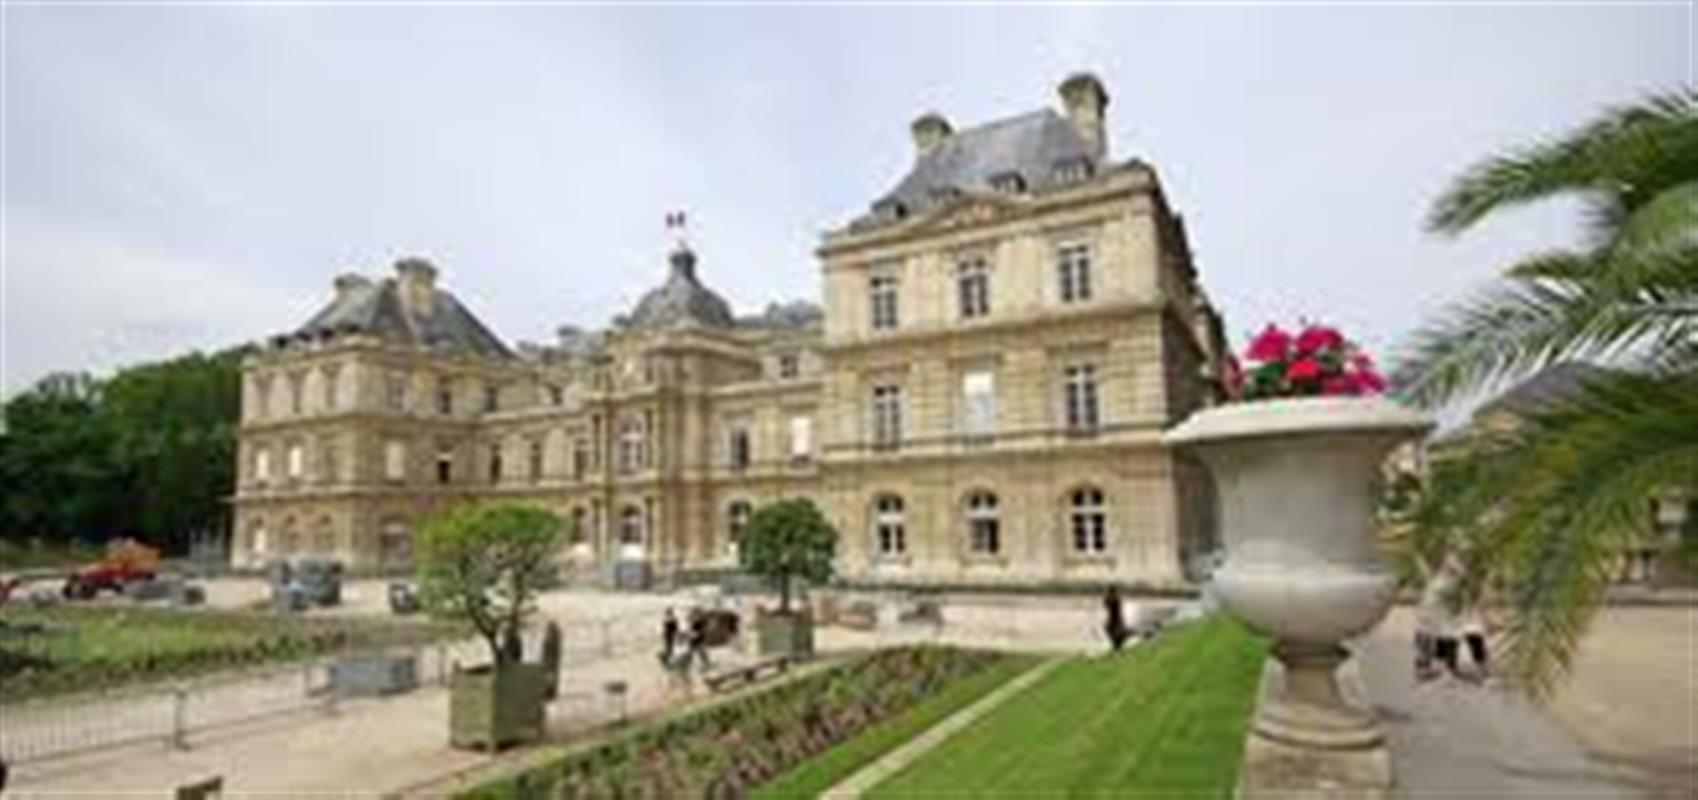 The Luxembourg Gardens Near The Hotel Orchid E Paris Monuments And Sightseeing Escapade